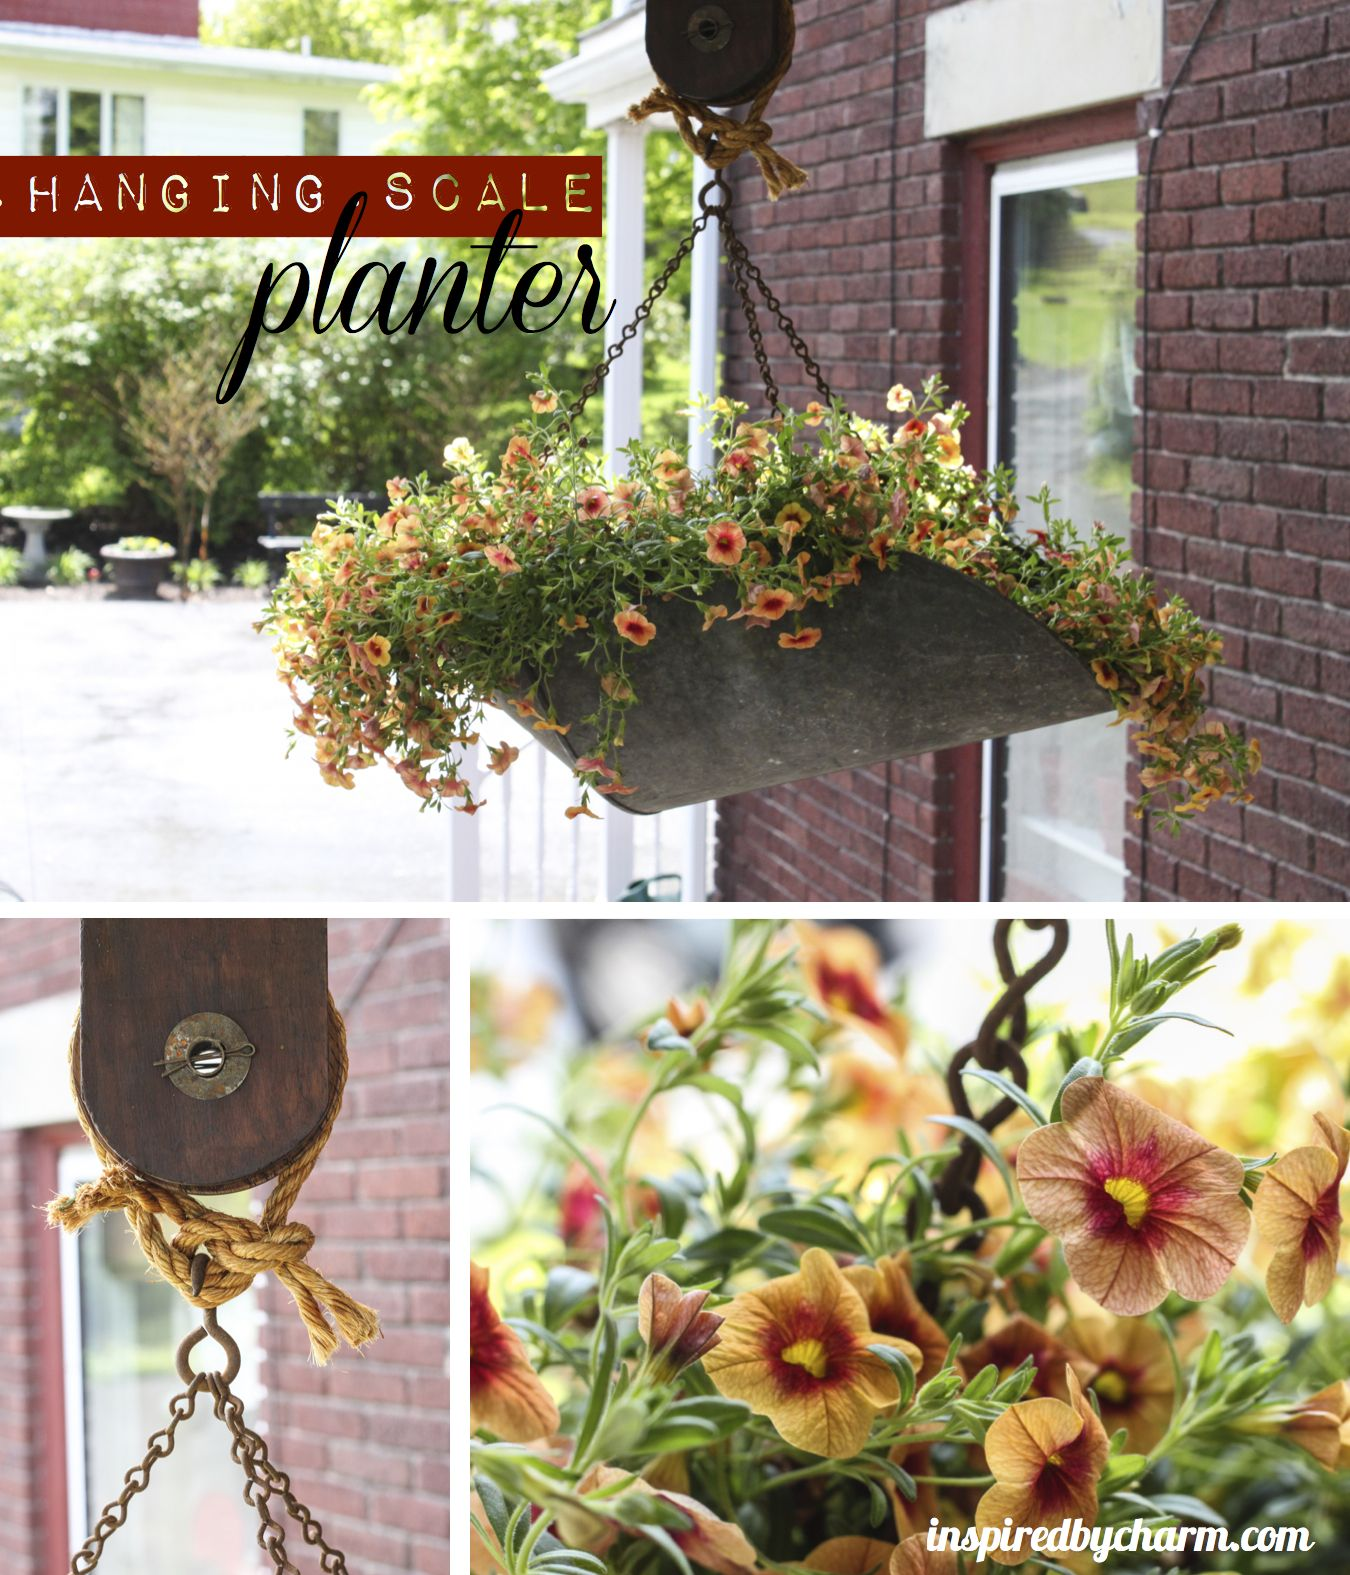 Hanging Scale Planter via Inspired by Charm